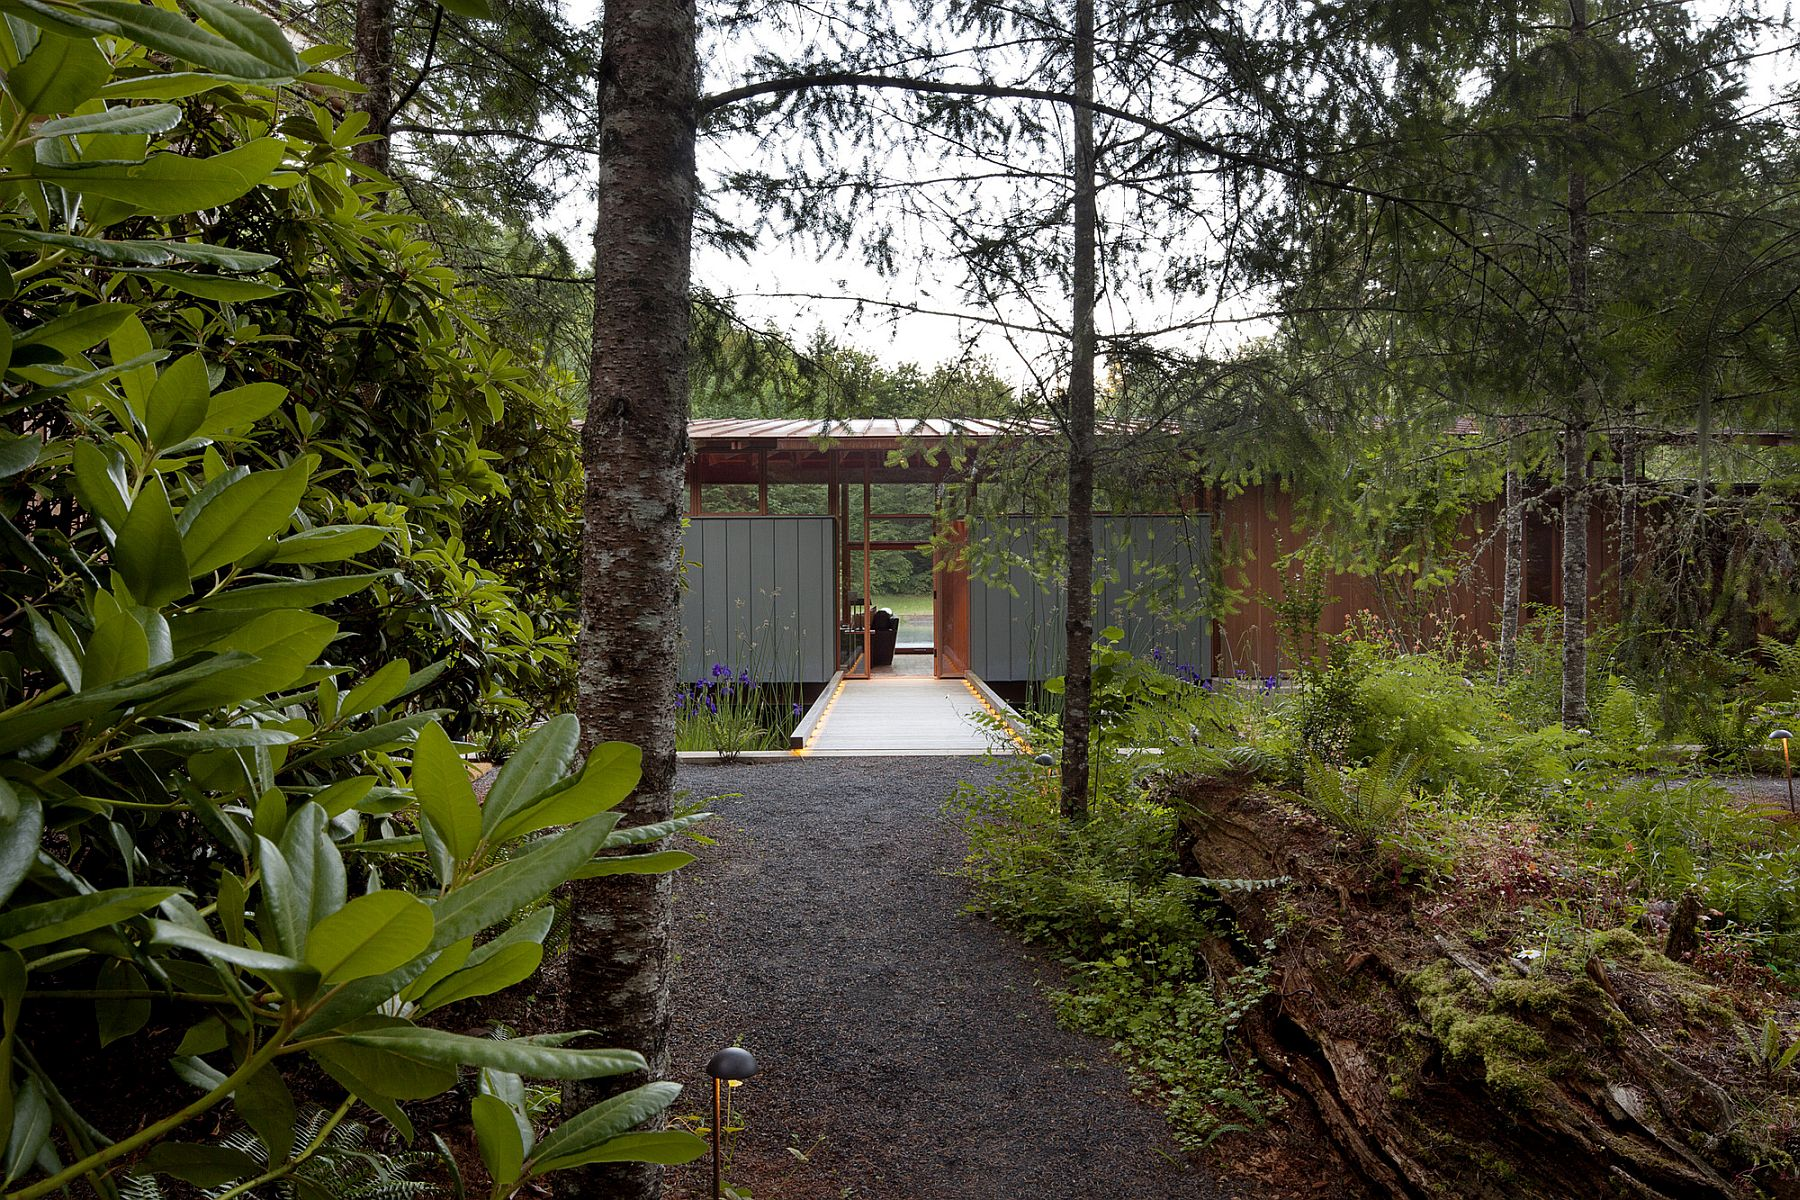 Entry to the exquisite green residence through stunning natural landscape